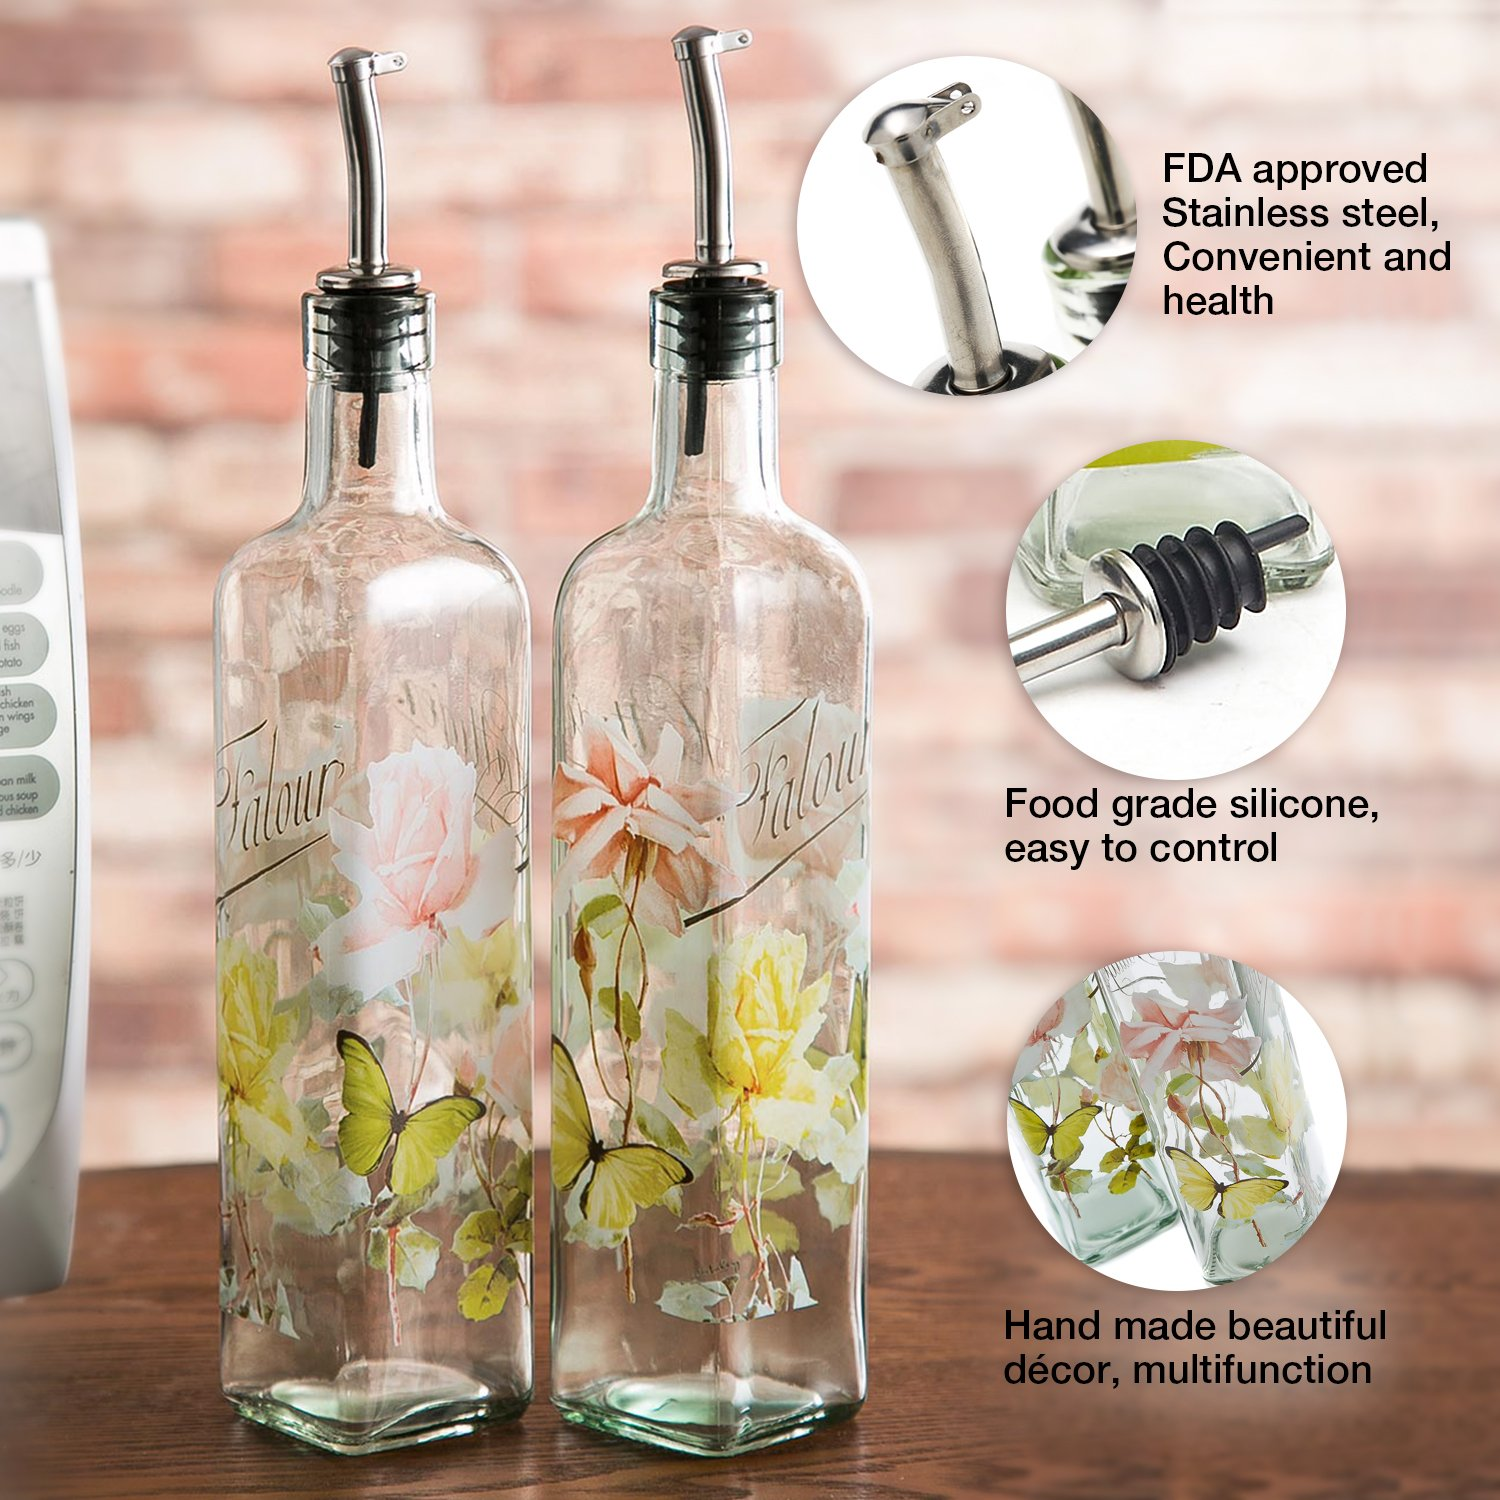 CEDAR HOME Olive Oil Bottle Set Glass Dispenser Vinegar Cruet 17oz. with Stainless Steel Leak Proof Pourer Spout for Cooking or Salad Dressing, 2 Pack, Pink by CEDAR HOME (Image #3)